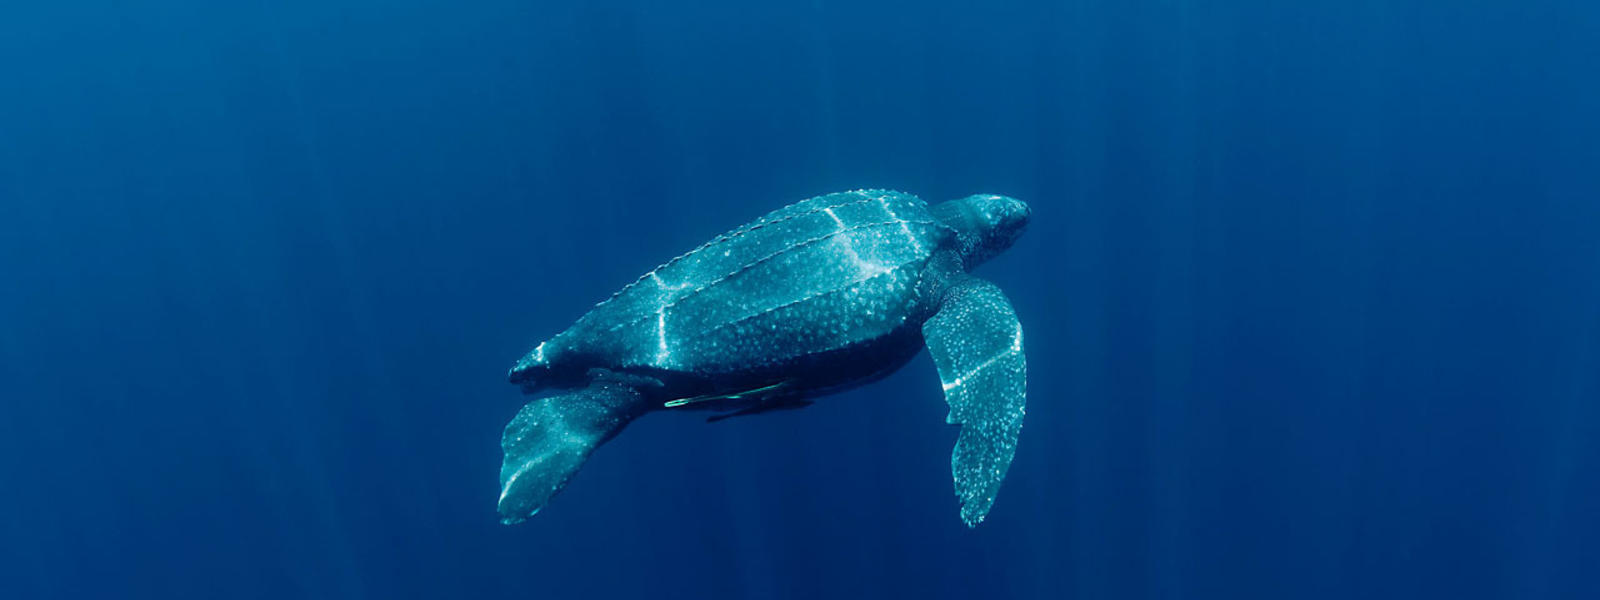 leatherback turtle sea turtles species wwf